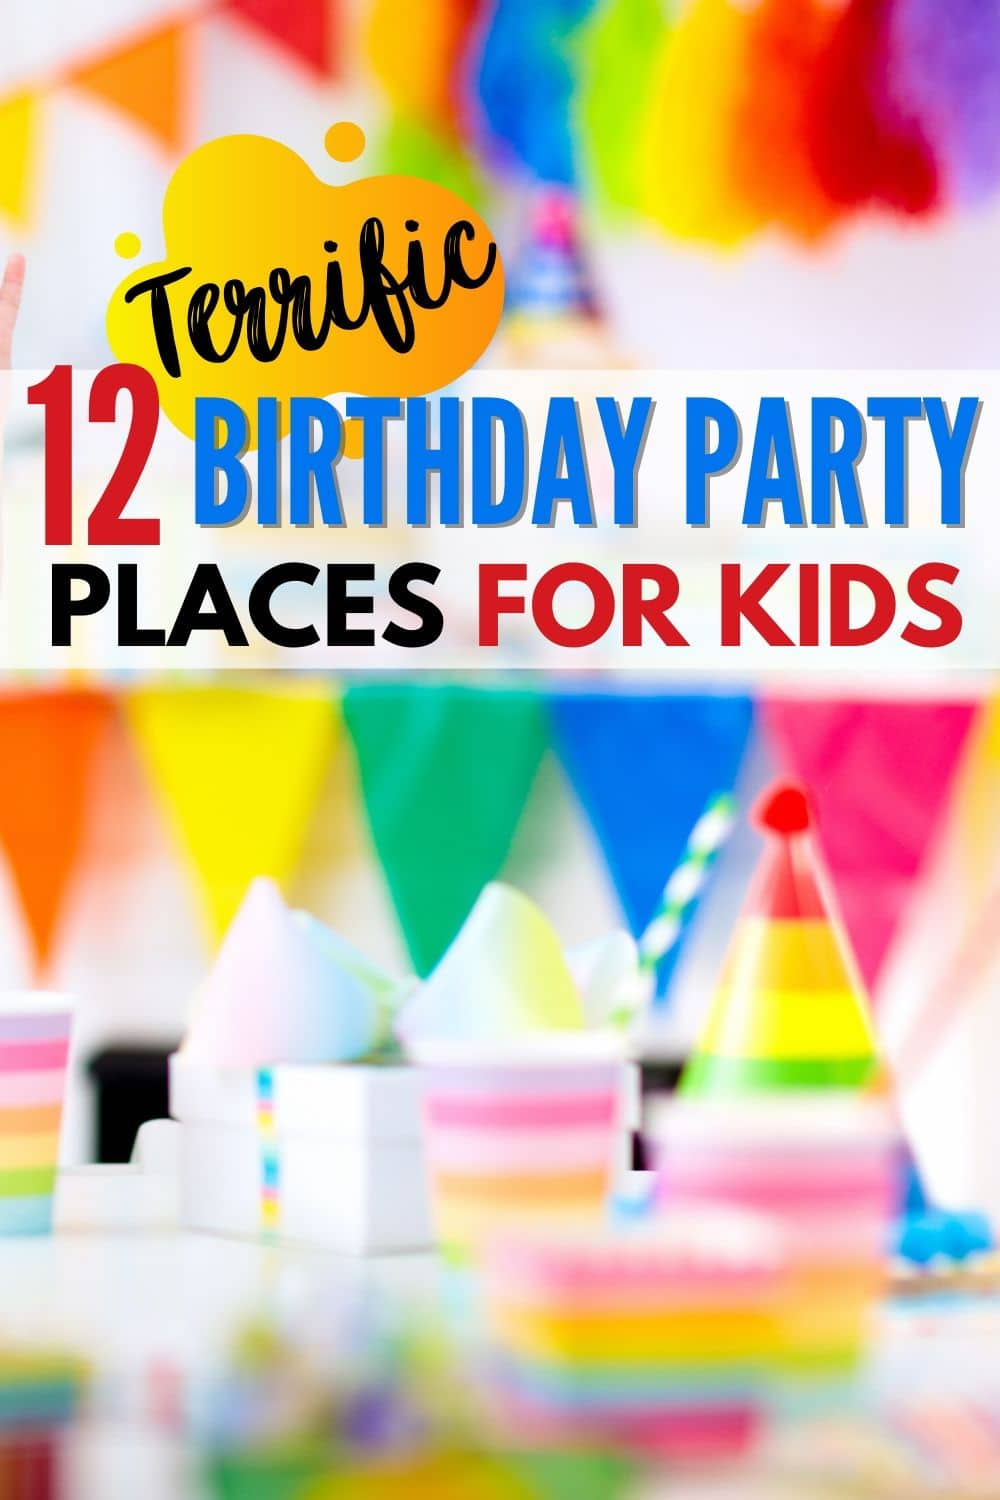 blurred bright and colorful birthday party decorations with title text reading 12 Birthday Party Places For Kids